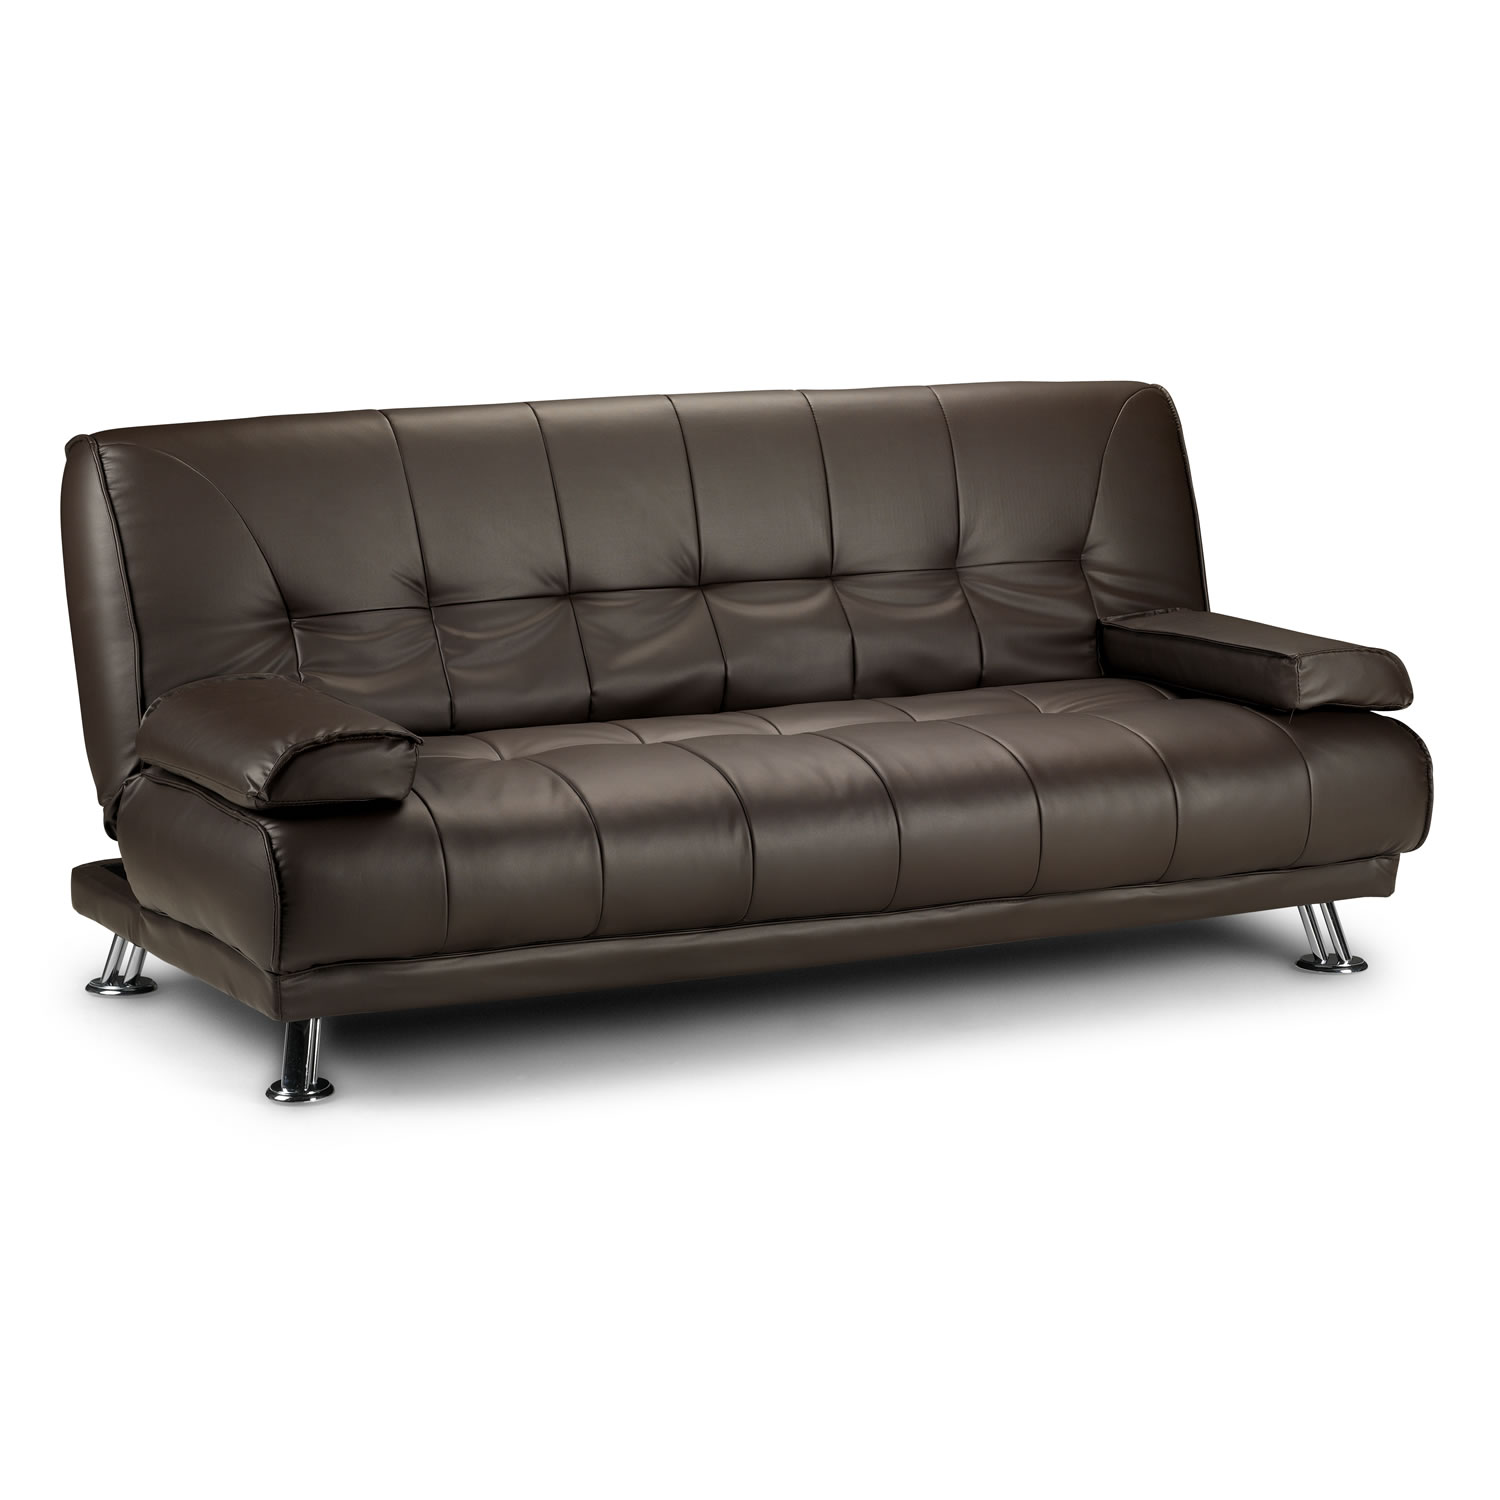 leather sofa bed venice sofa bed - next day delivery venice sofa bed XNLBDGS